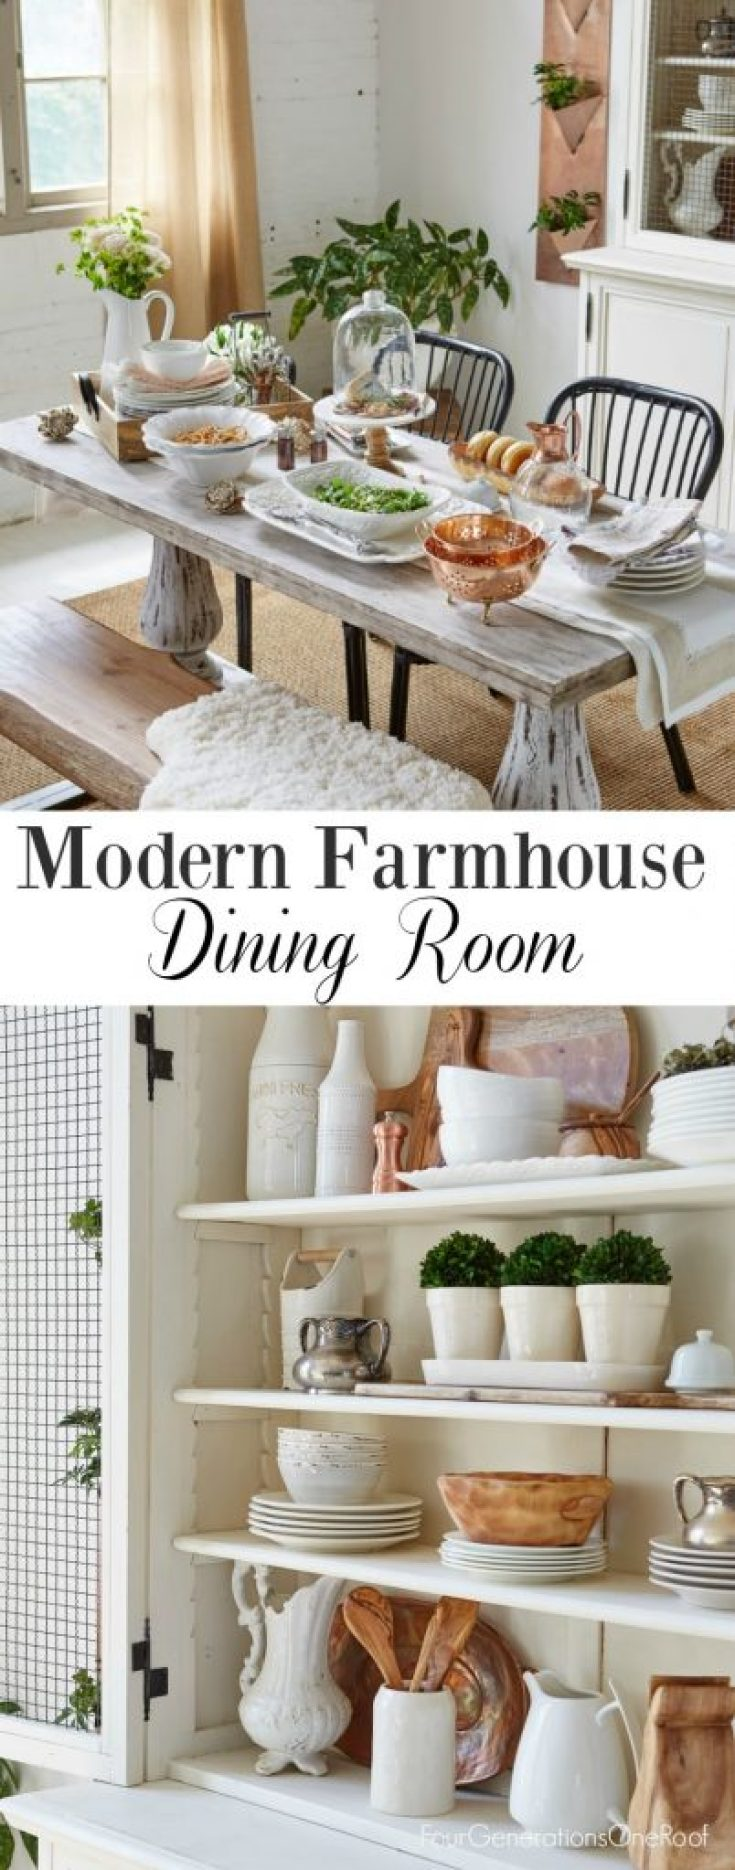 modern farmhouse dining room / Elements to a modern farmhouse space / How to create a modern farmhouse dining room /